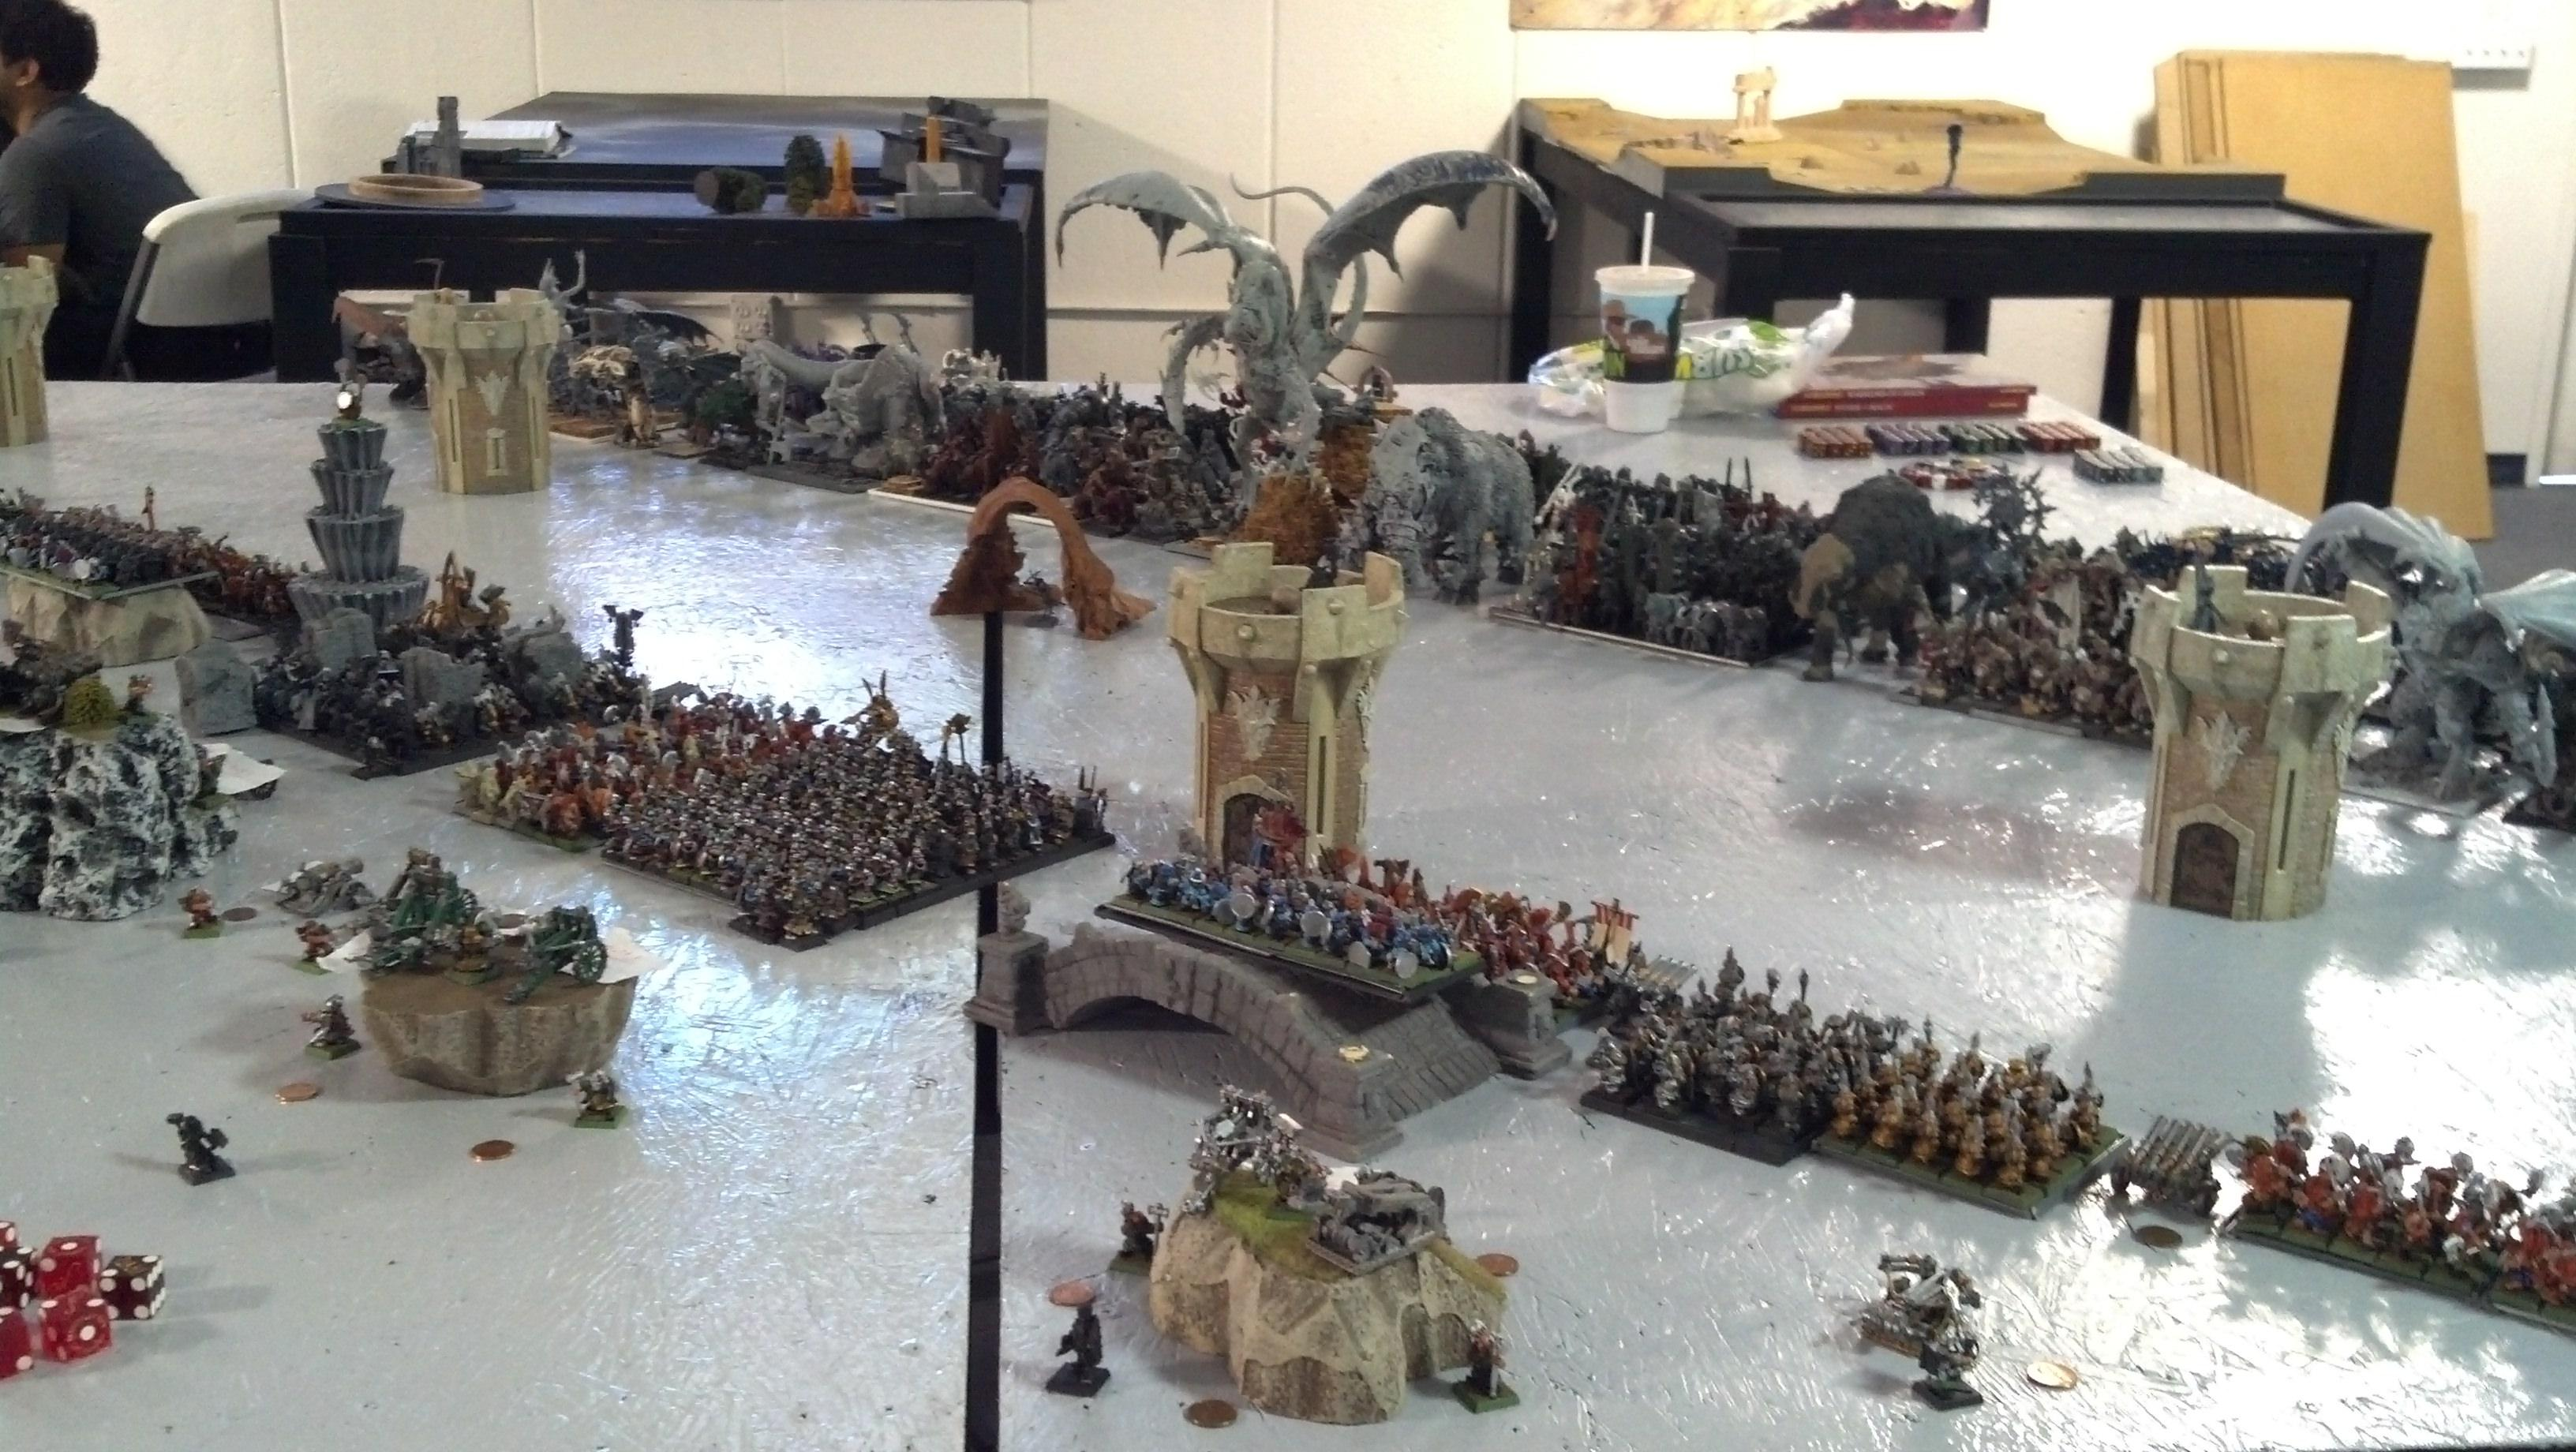 The Hordes of Chaos